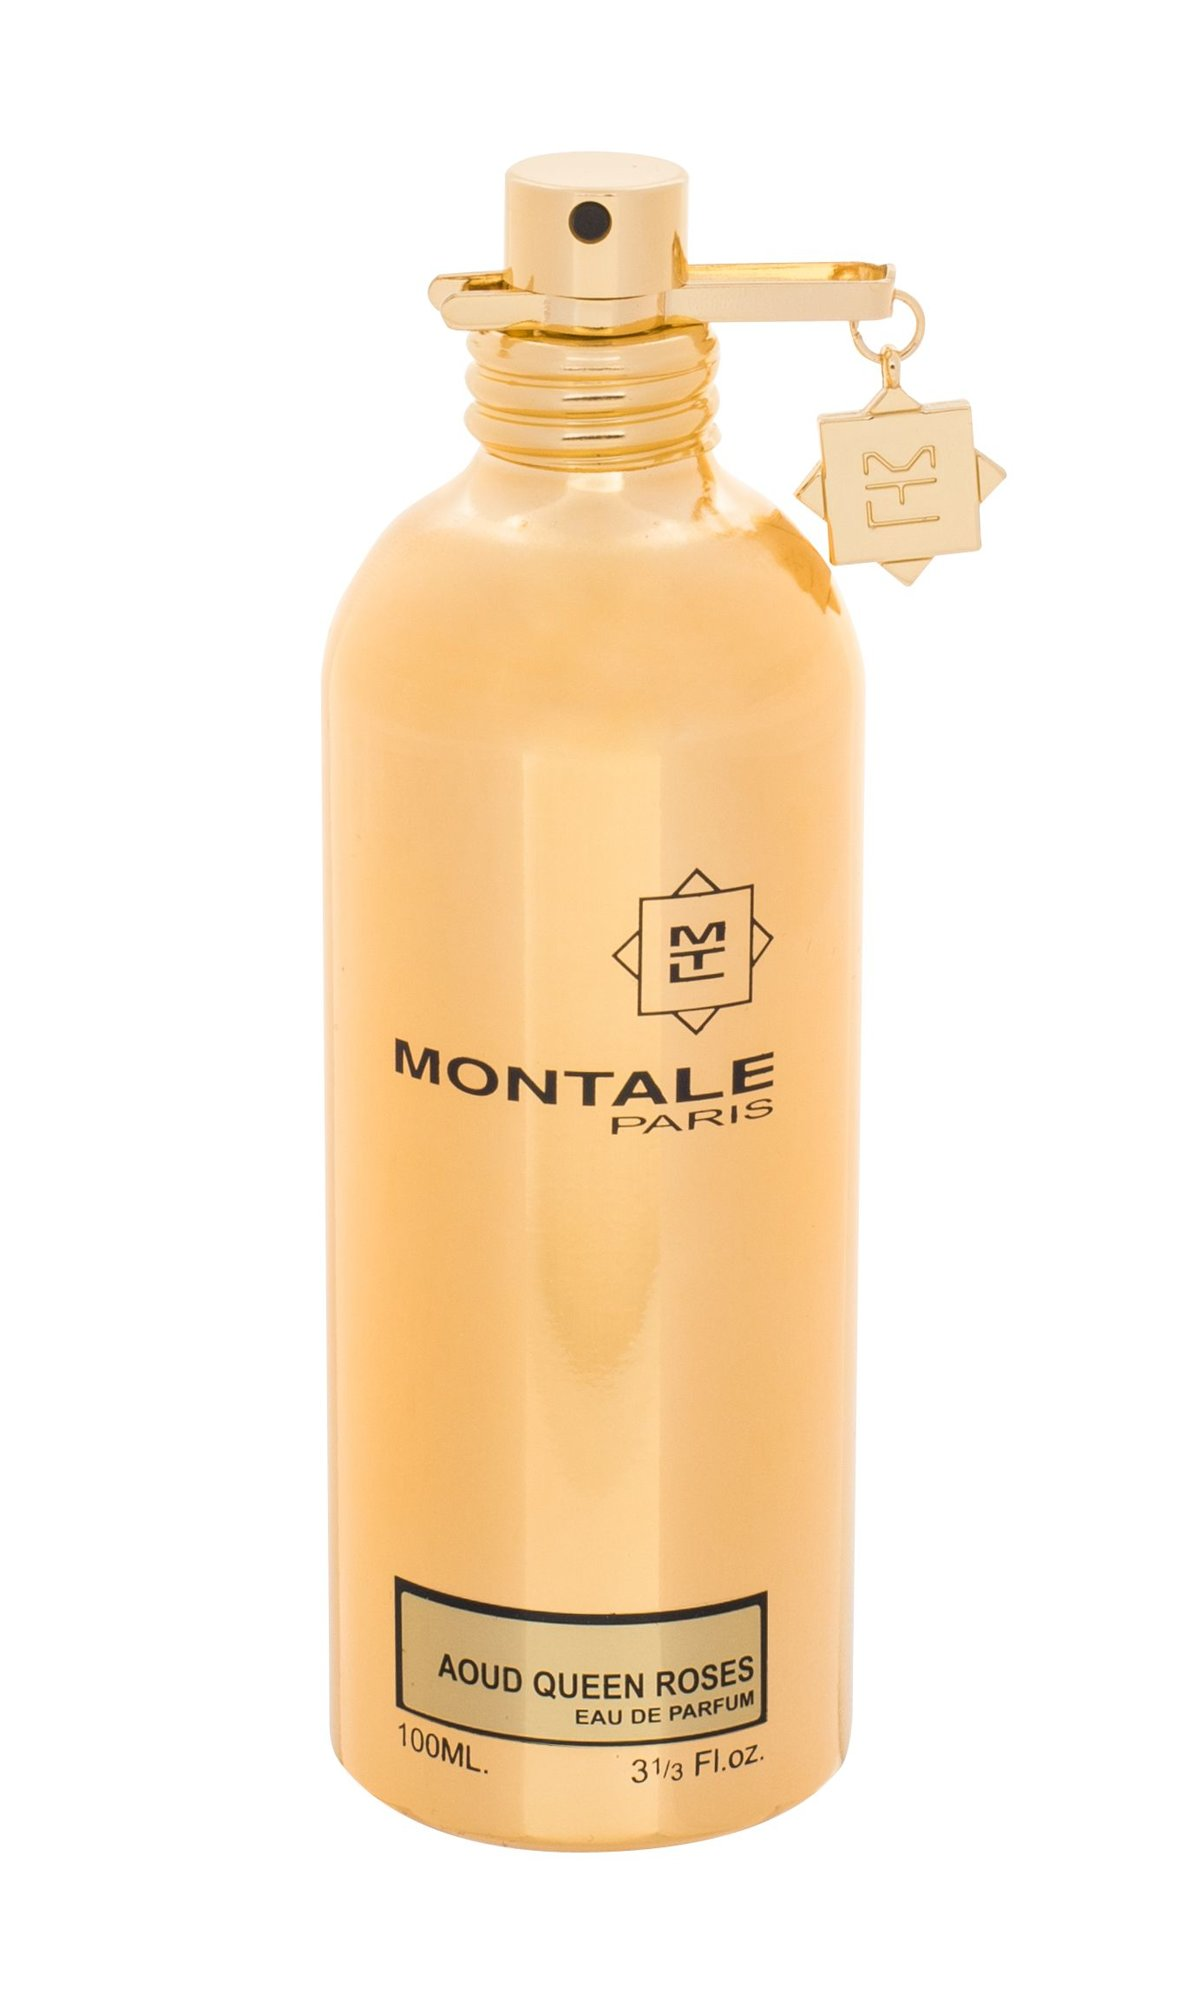 Montale Paris Aoud Queen Roses EDP 100ml